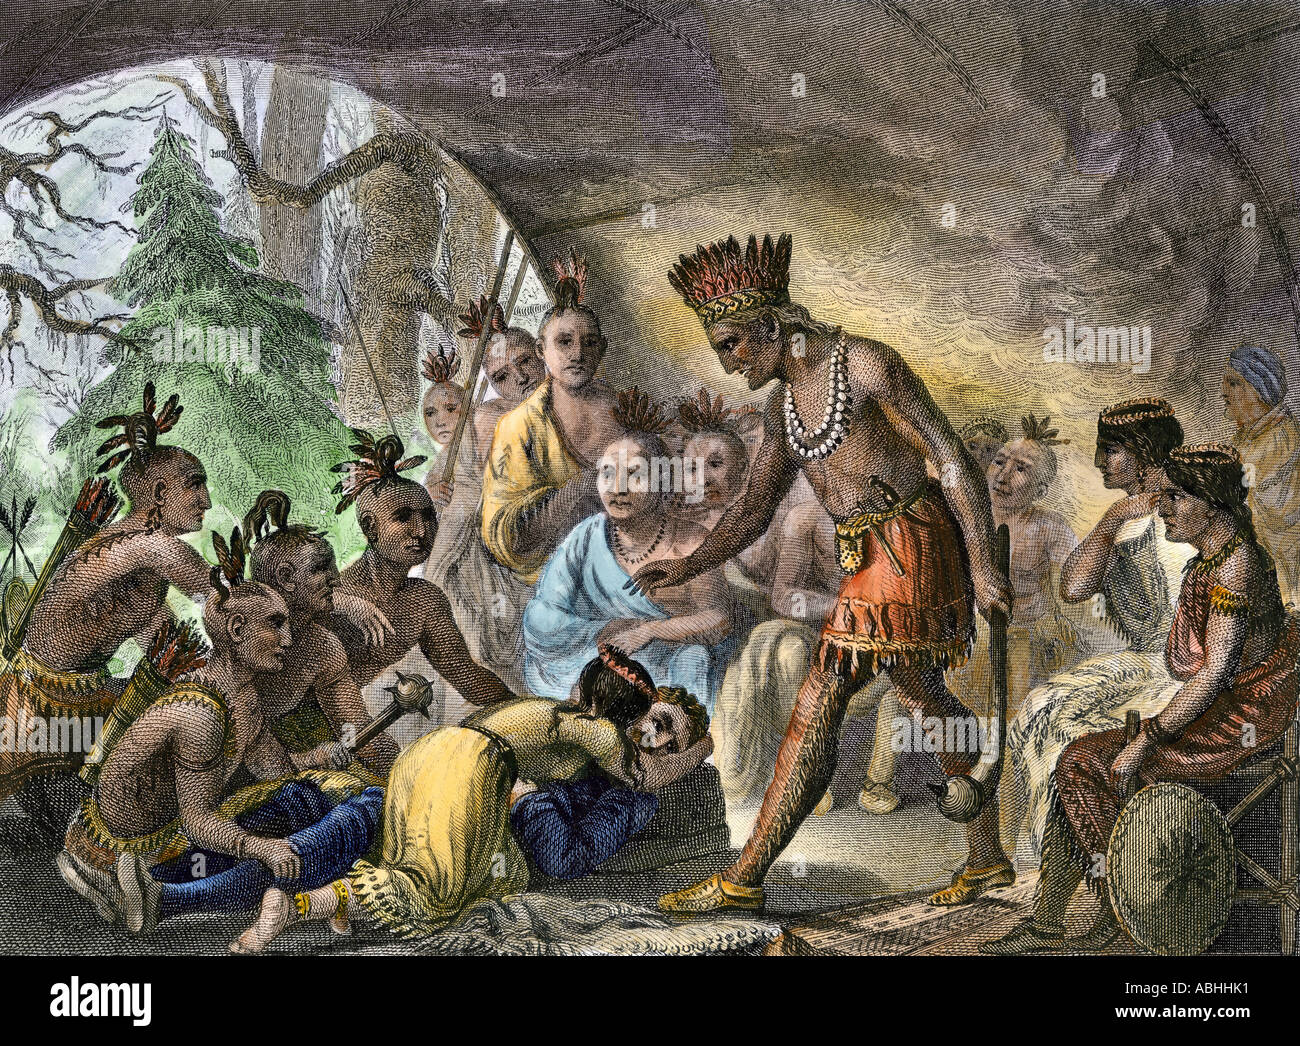 John Smith saved by Pocahontas at Jamestown in Virginia Colony 1607.  Hand-colored engraving